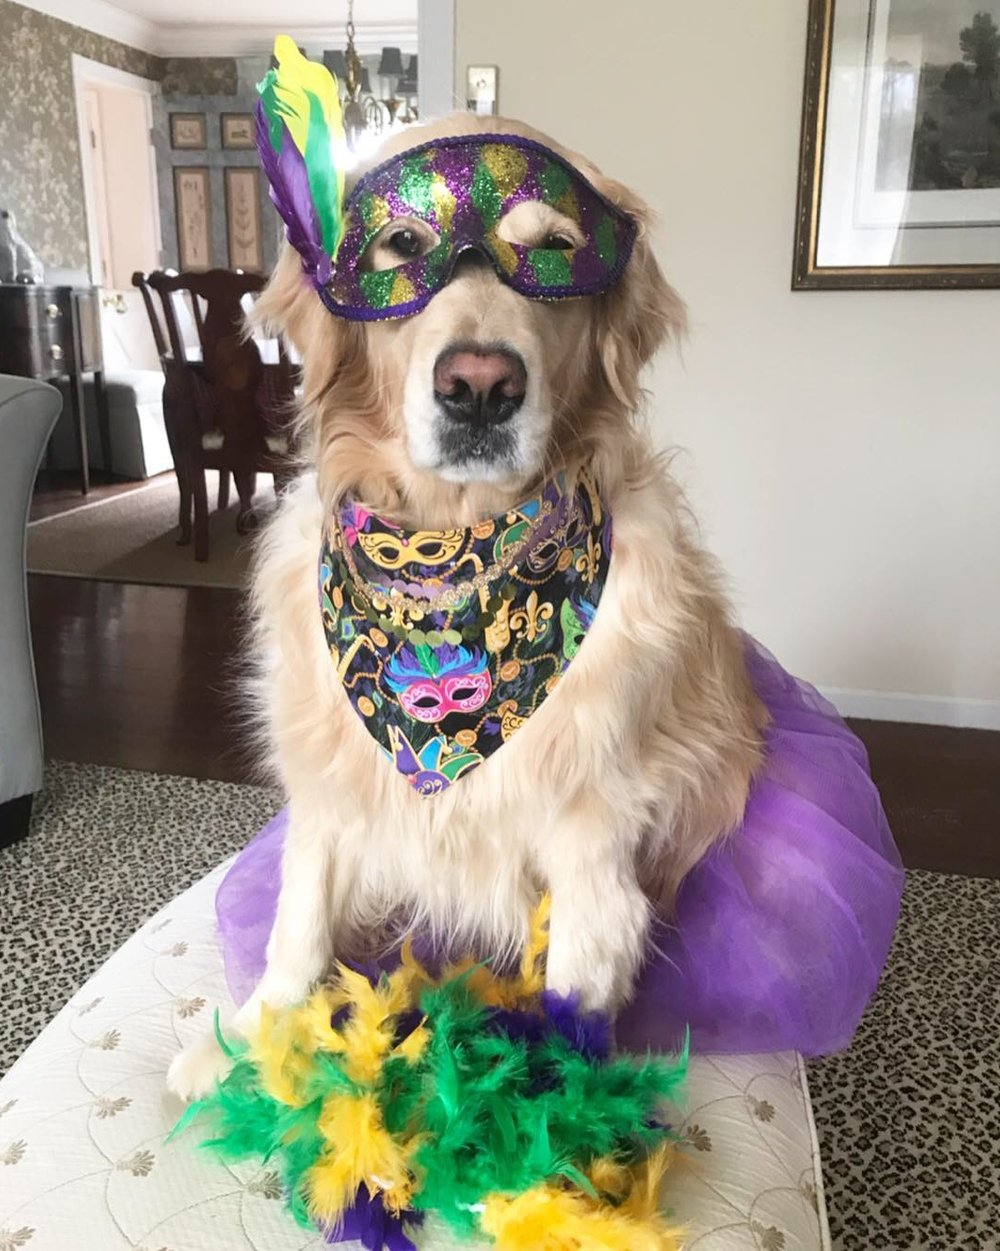 Our  Mardi Gras  Shop is open! We have lots of toys and accessories so you can look festive, whether you are partying it up in New Orleans or celebrating at home!